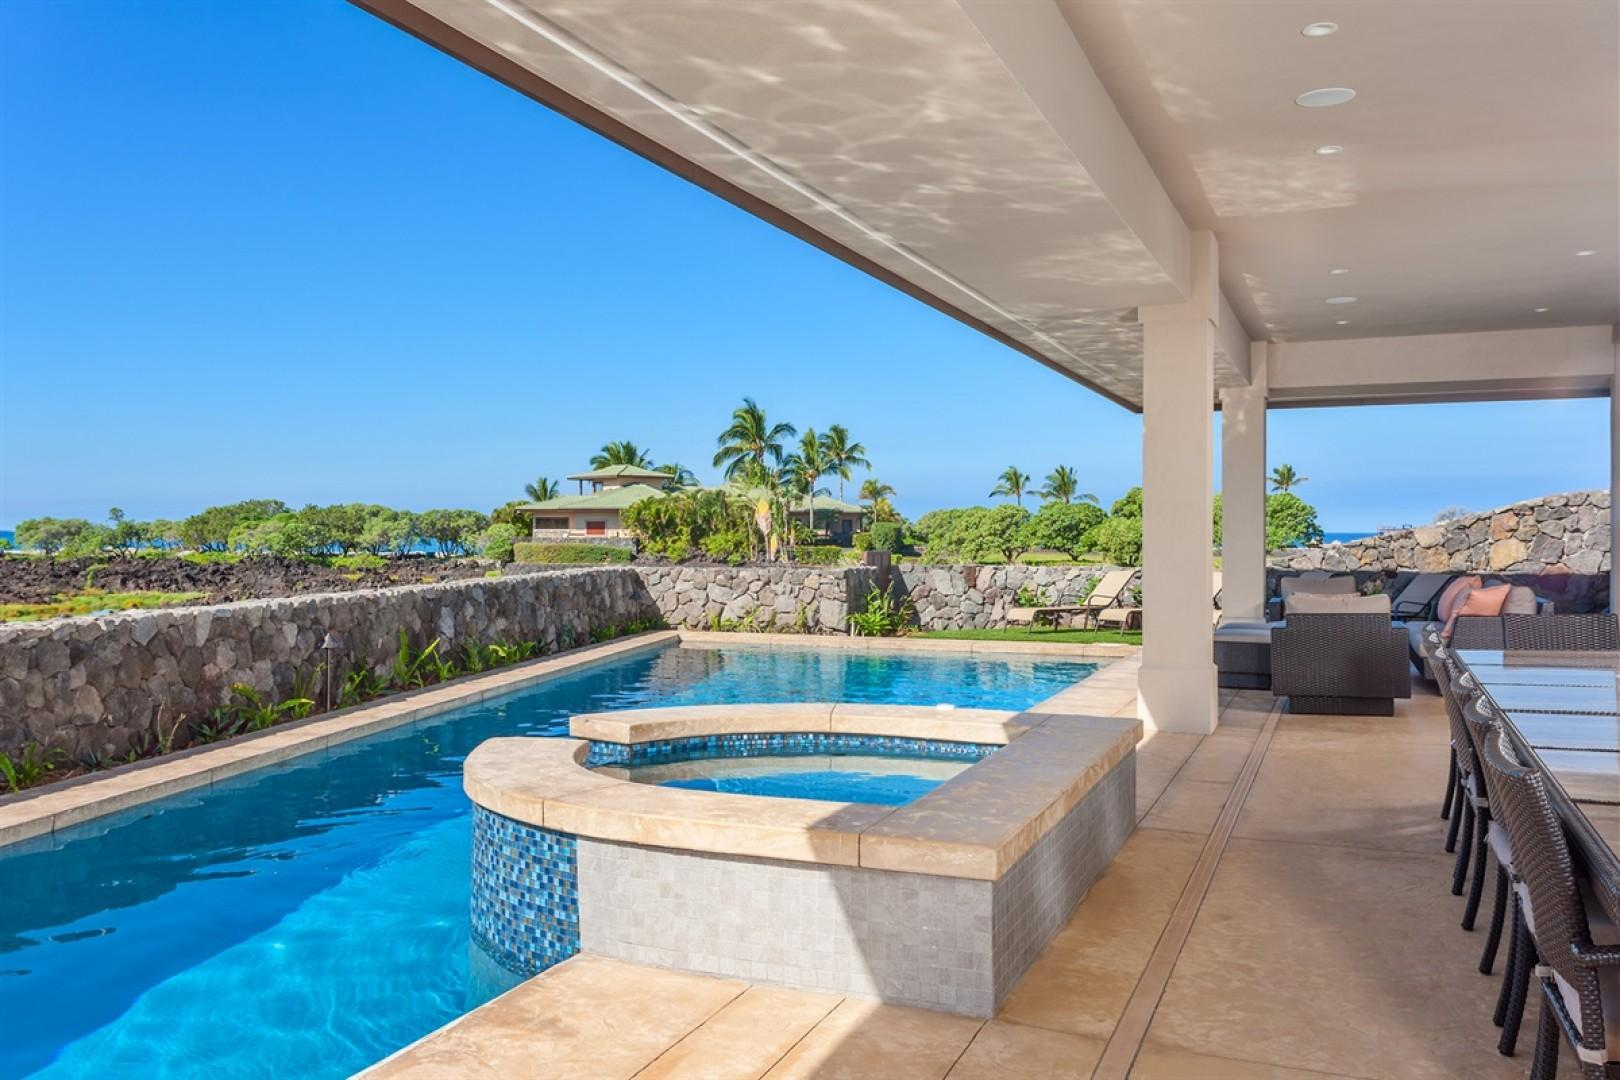 Pool, spa and outdoor dining area.